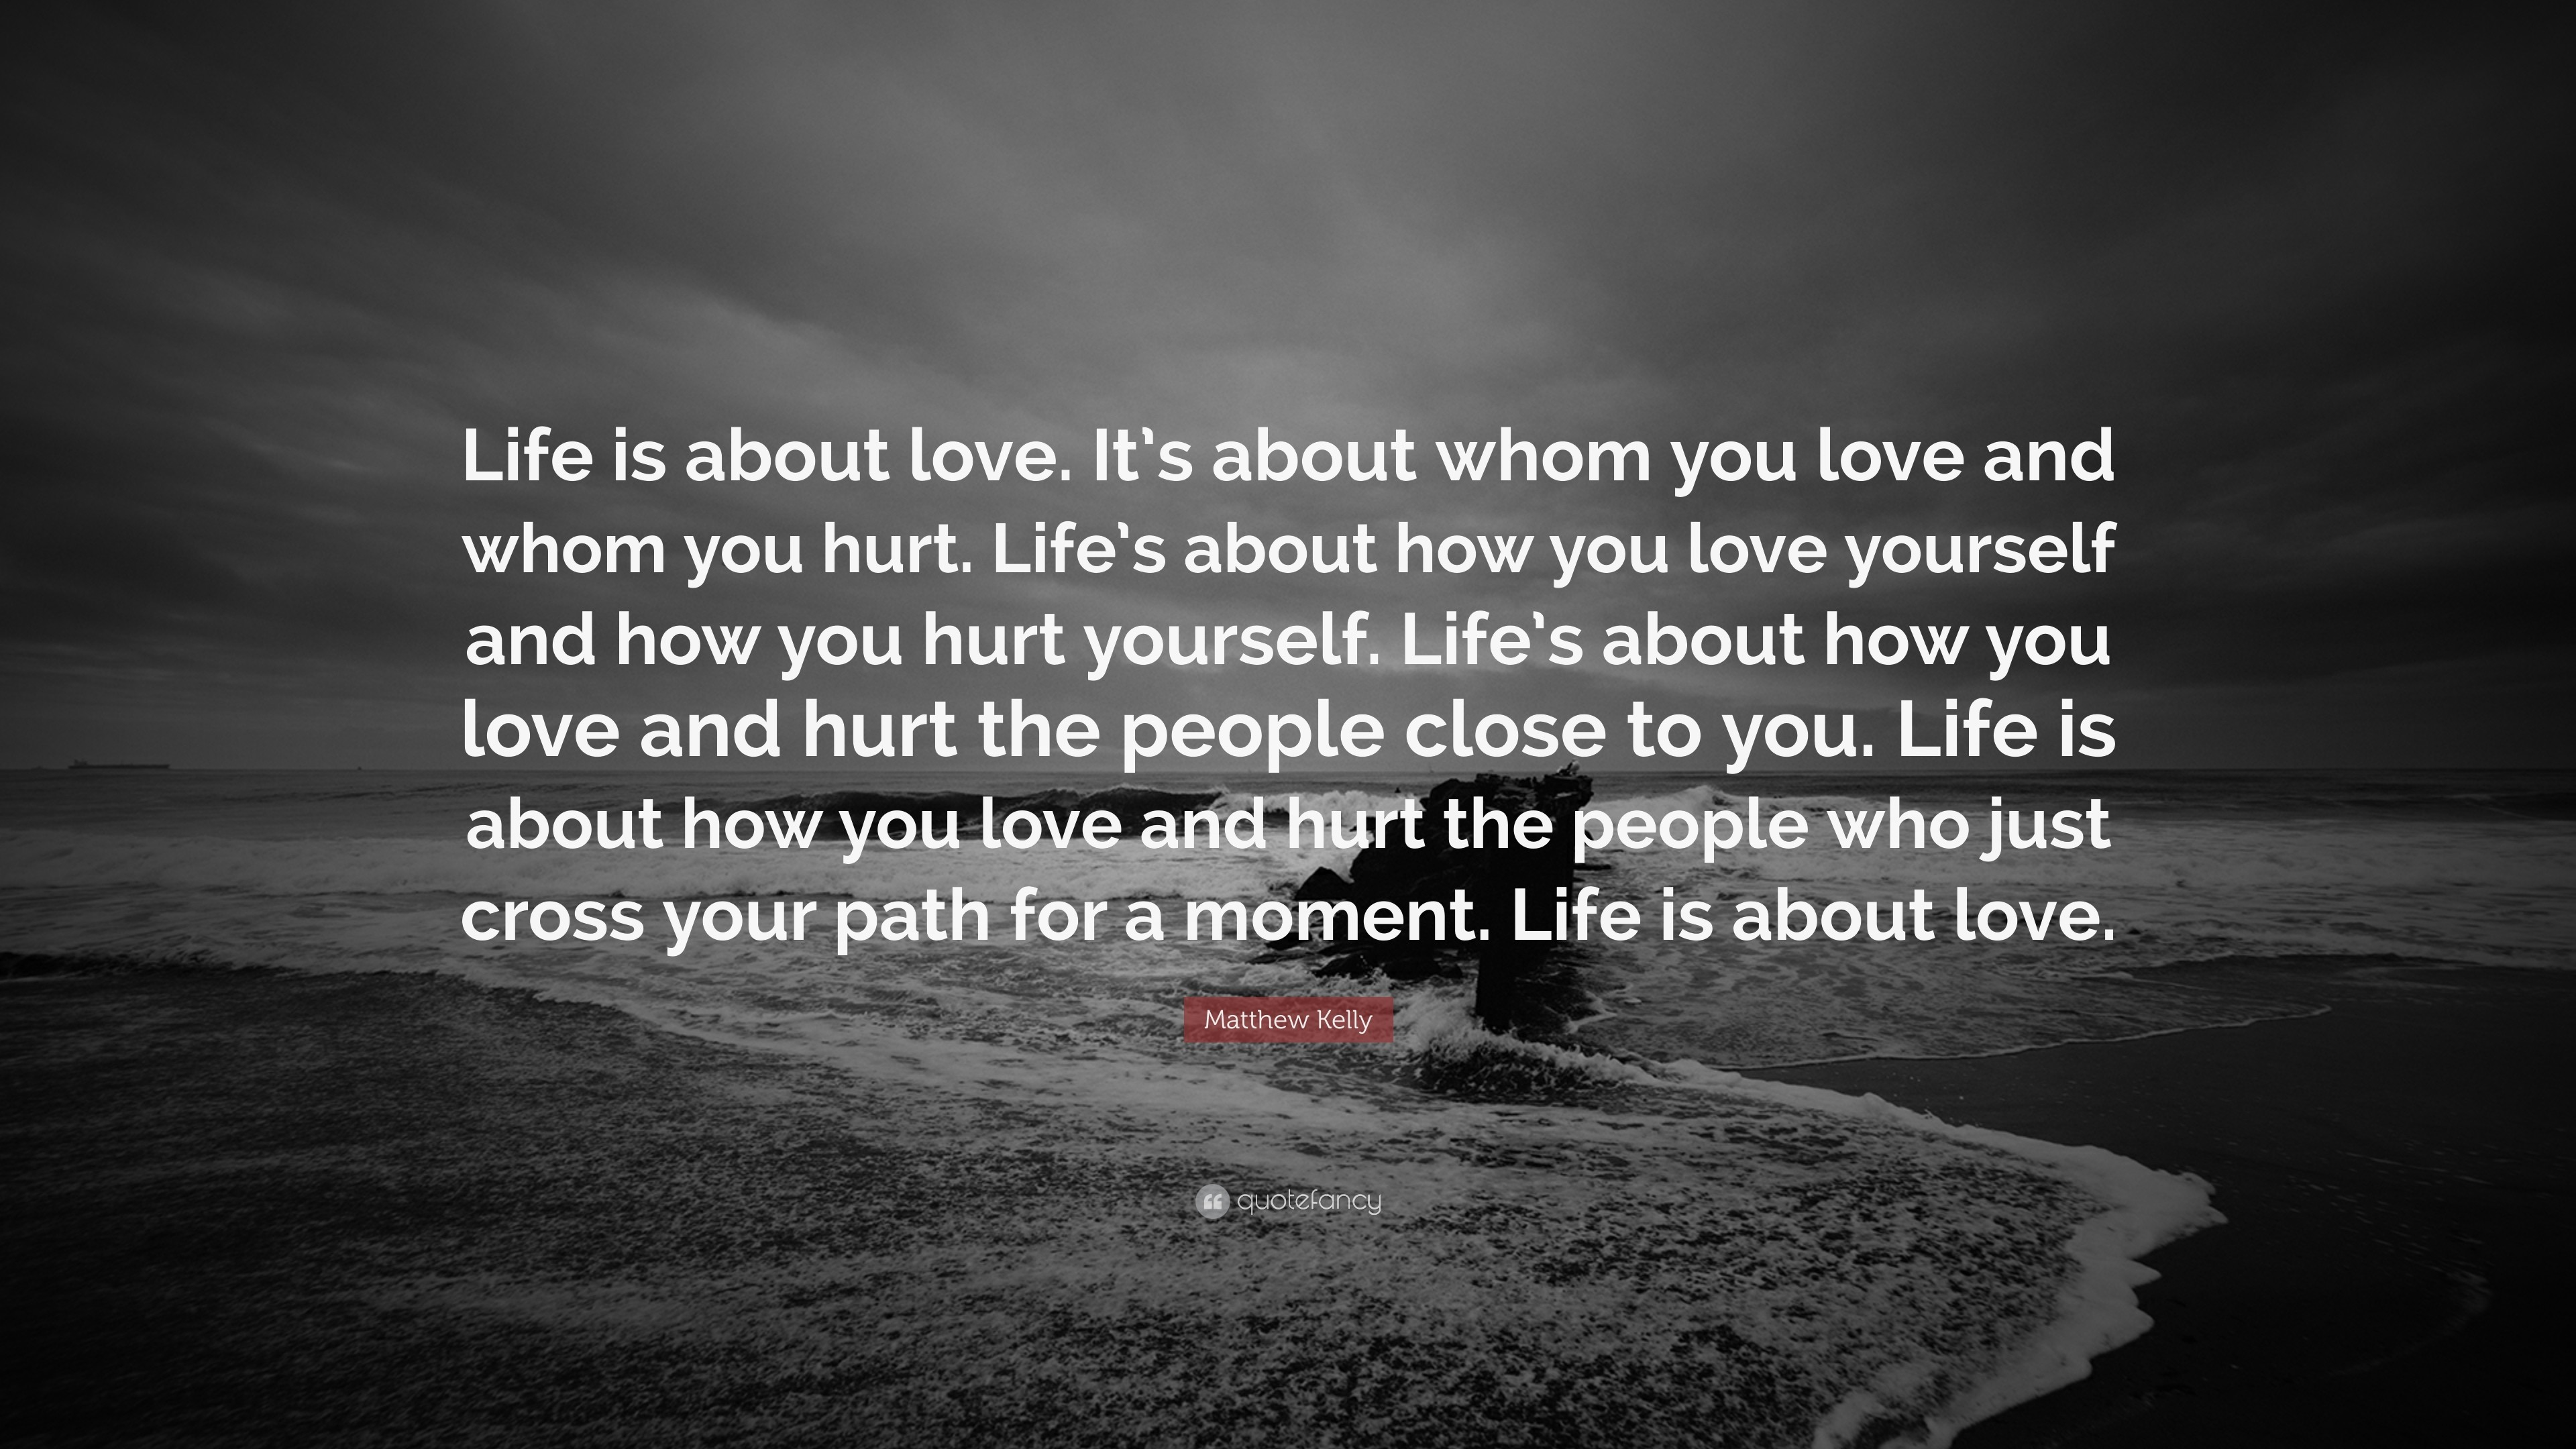 Wallpaper Of Love Hurts Quotes choice Image - Wallpaper ...